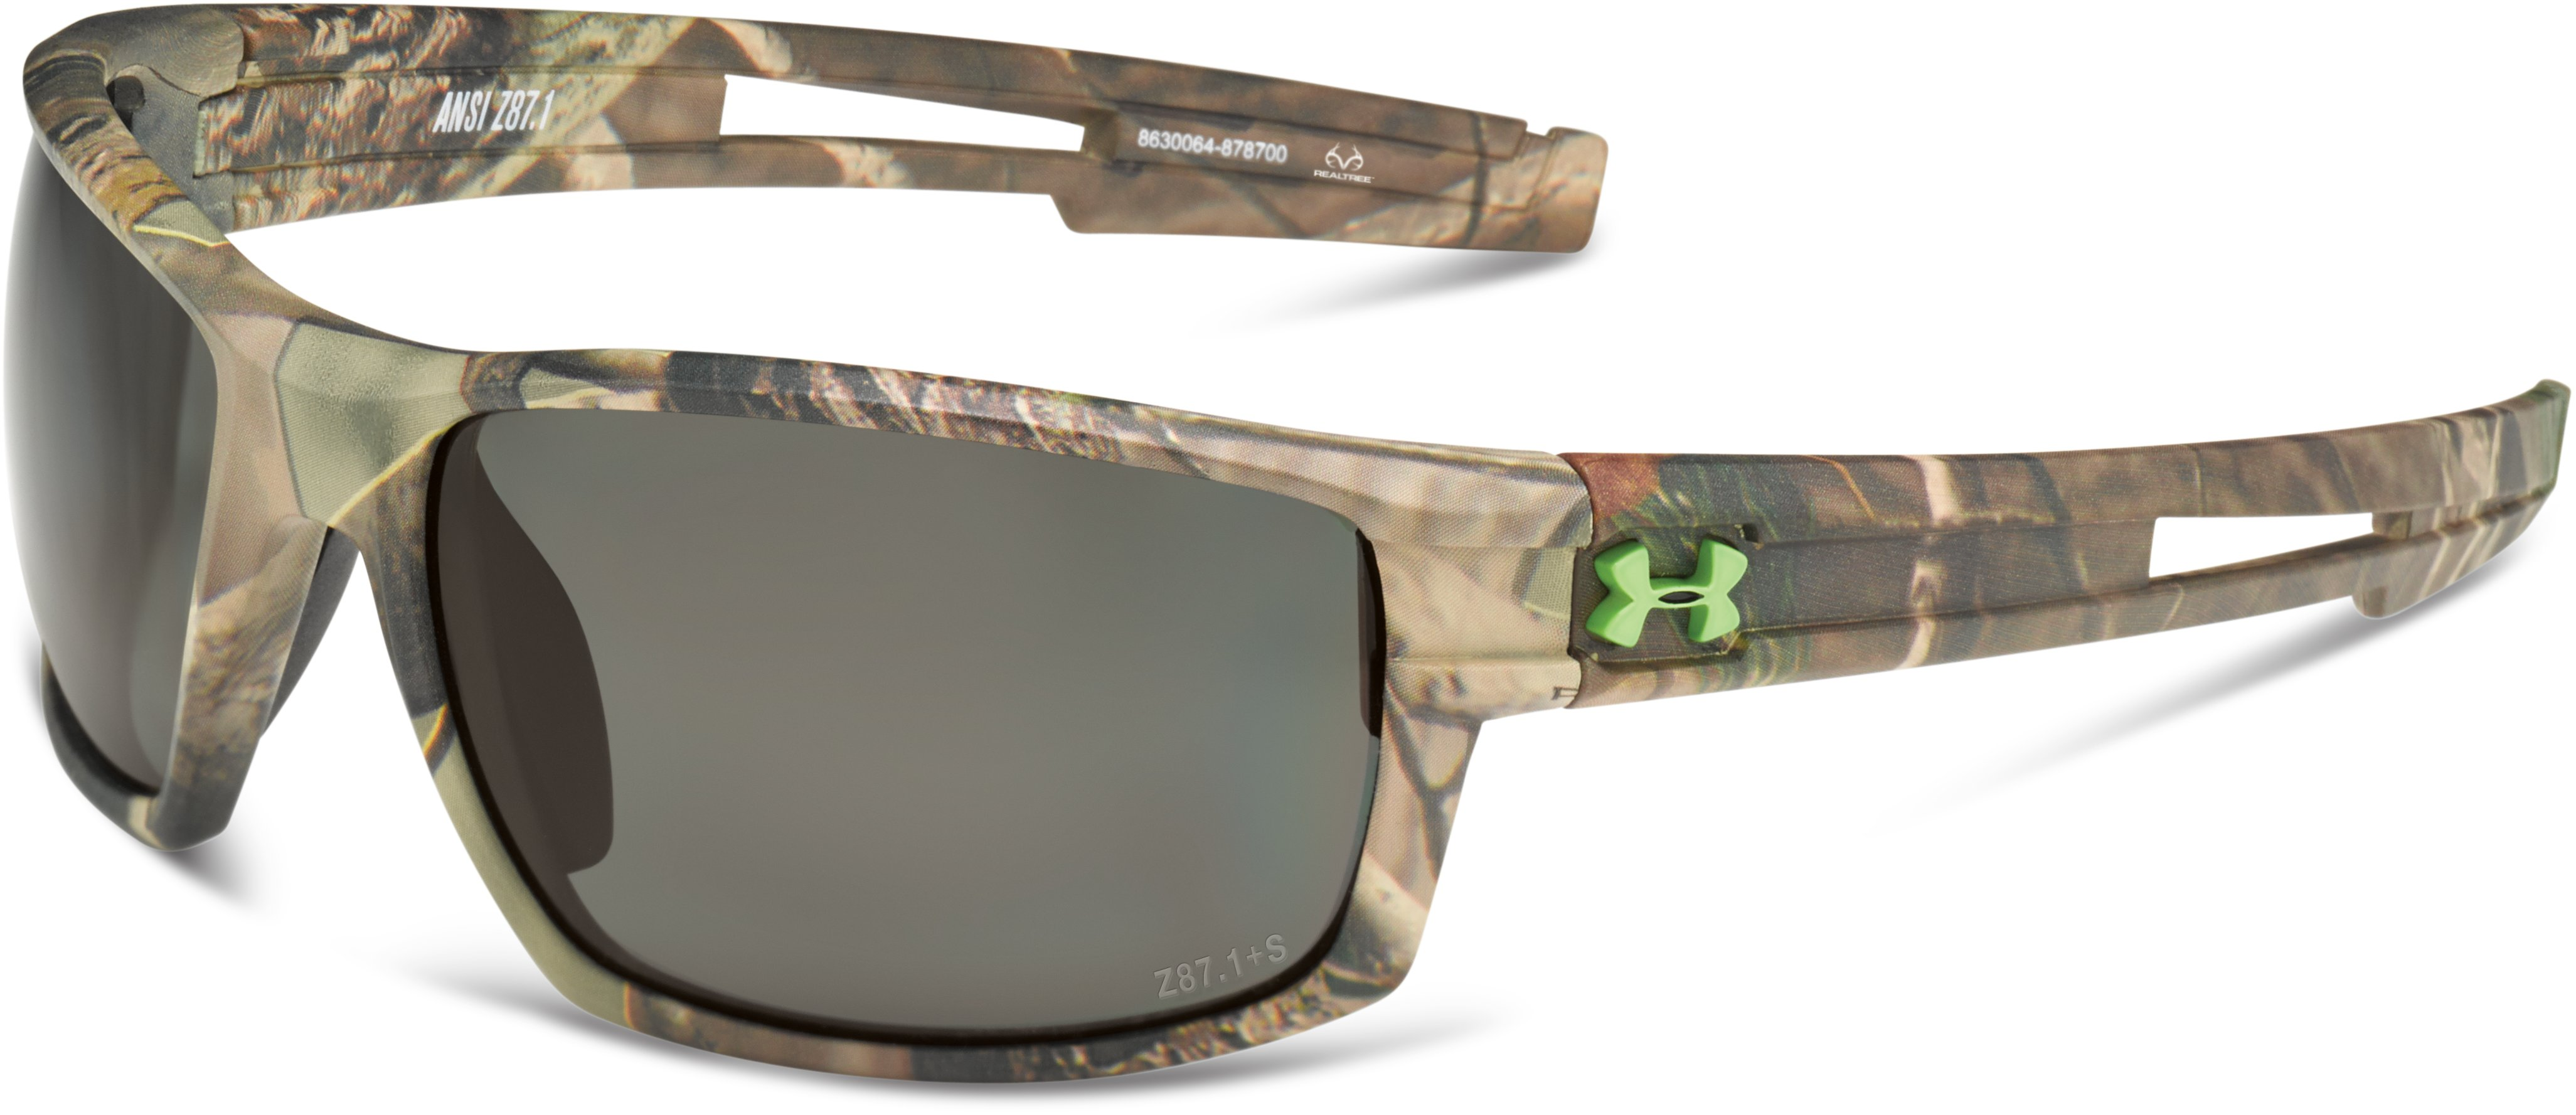 UA Captain Camo Sunglasses, Realtree AP,